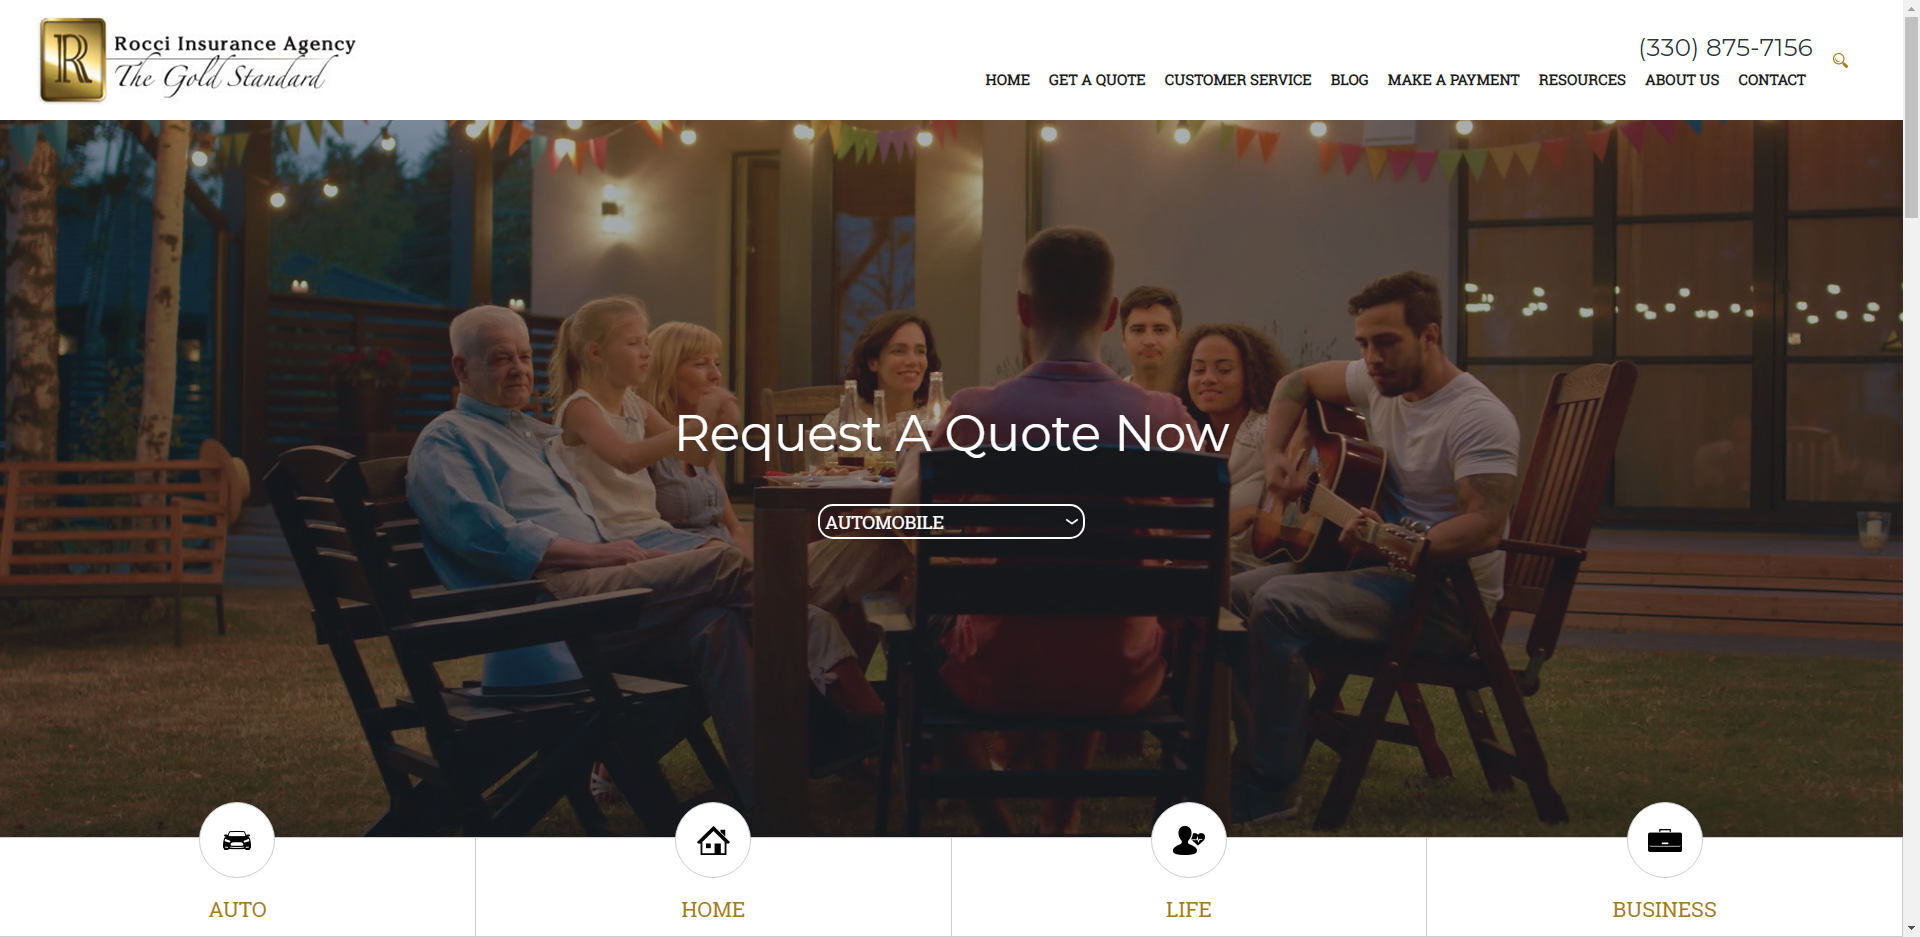 Rocci insurance Agency website